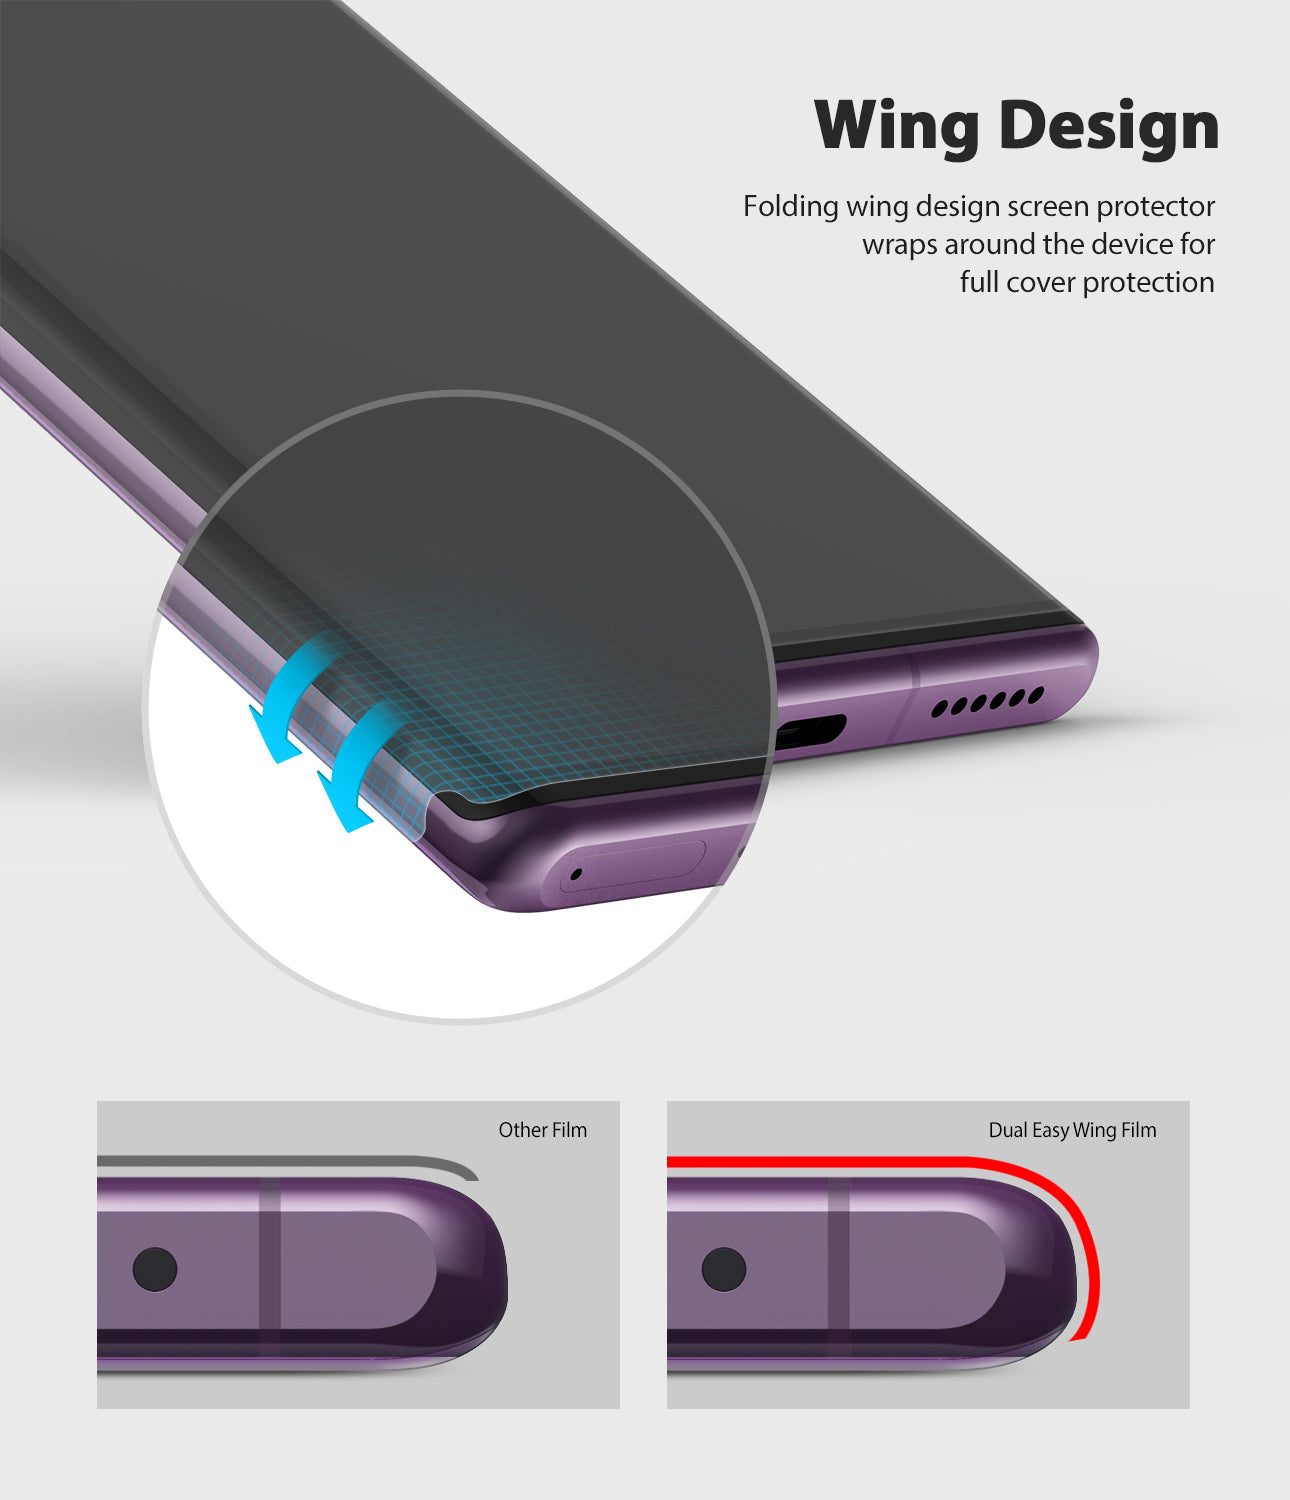 folding wing design screen protector wraps around the device for full cover protectioln